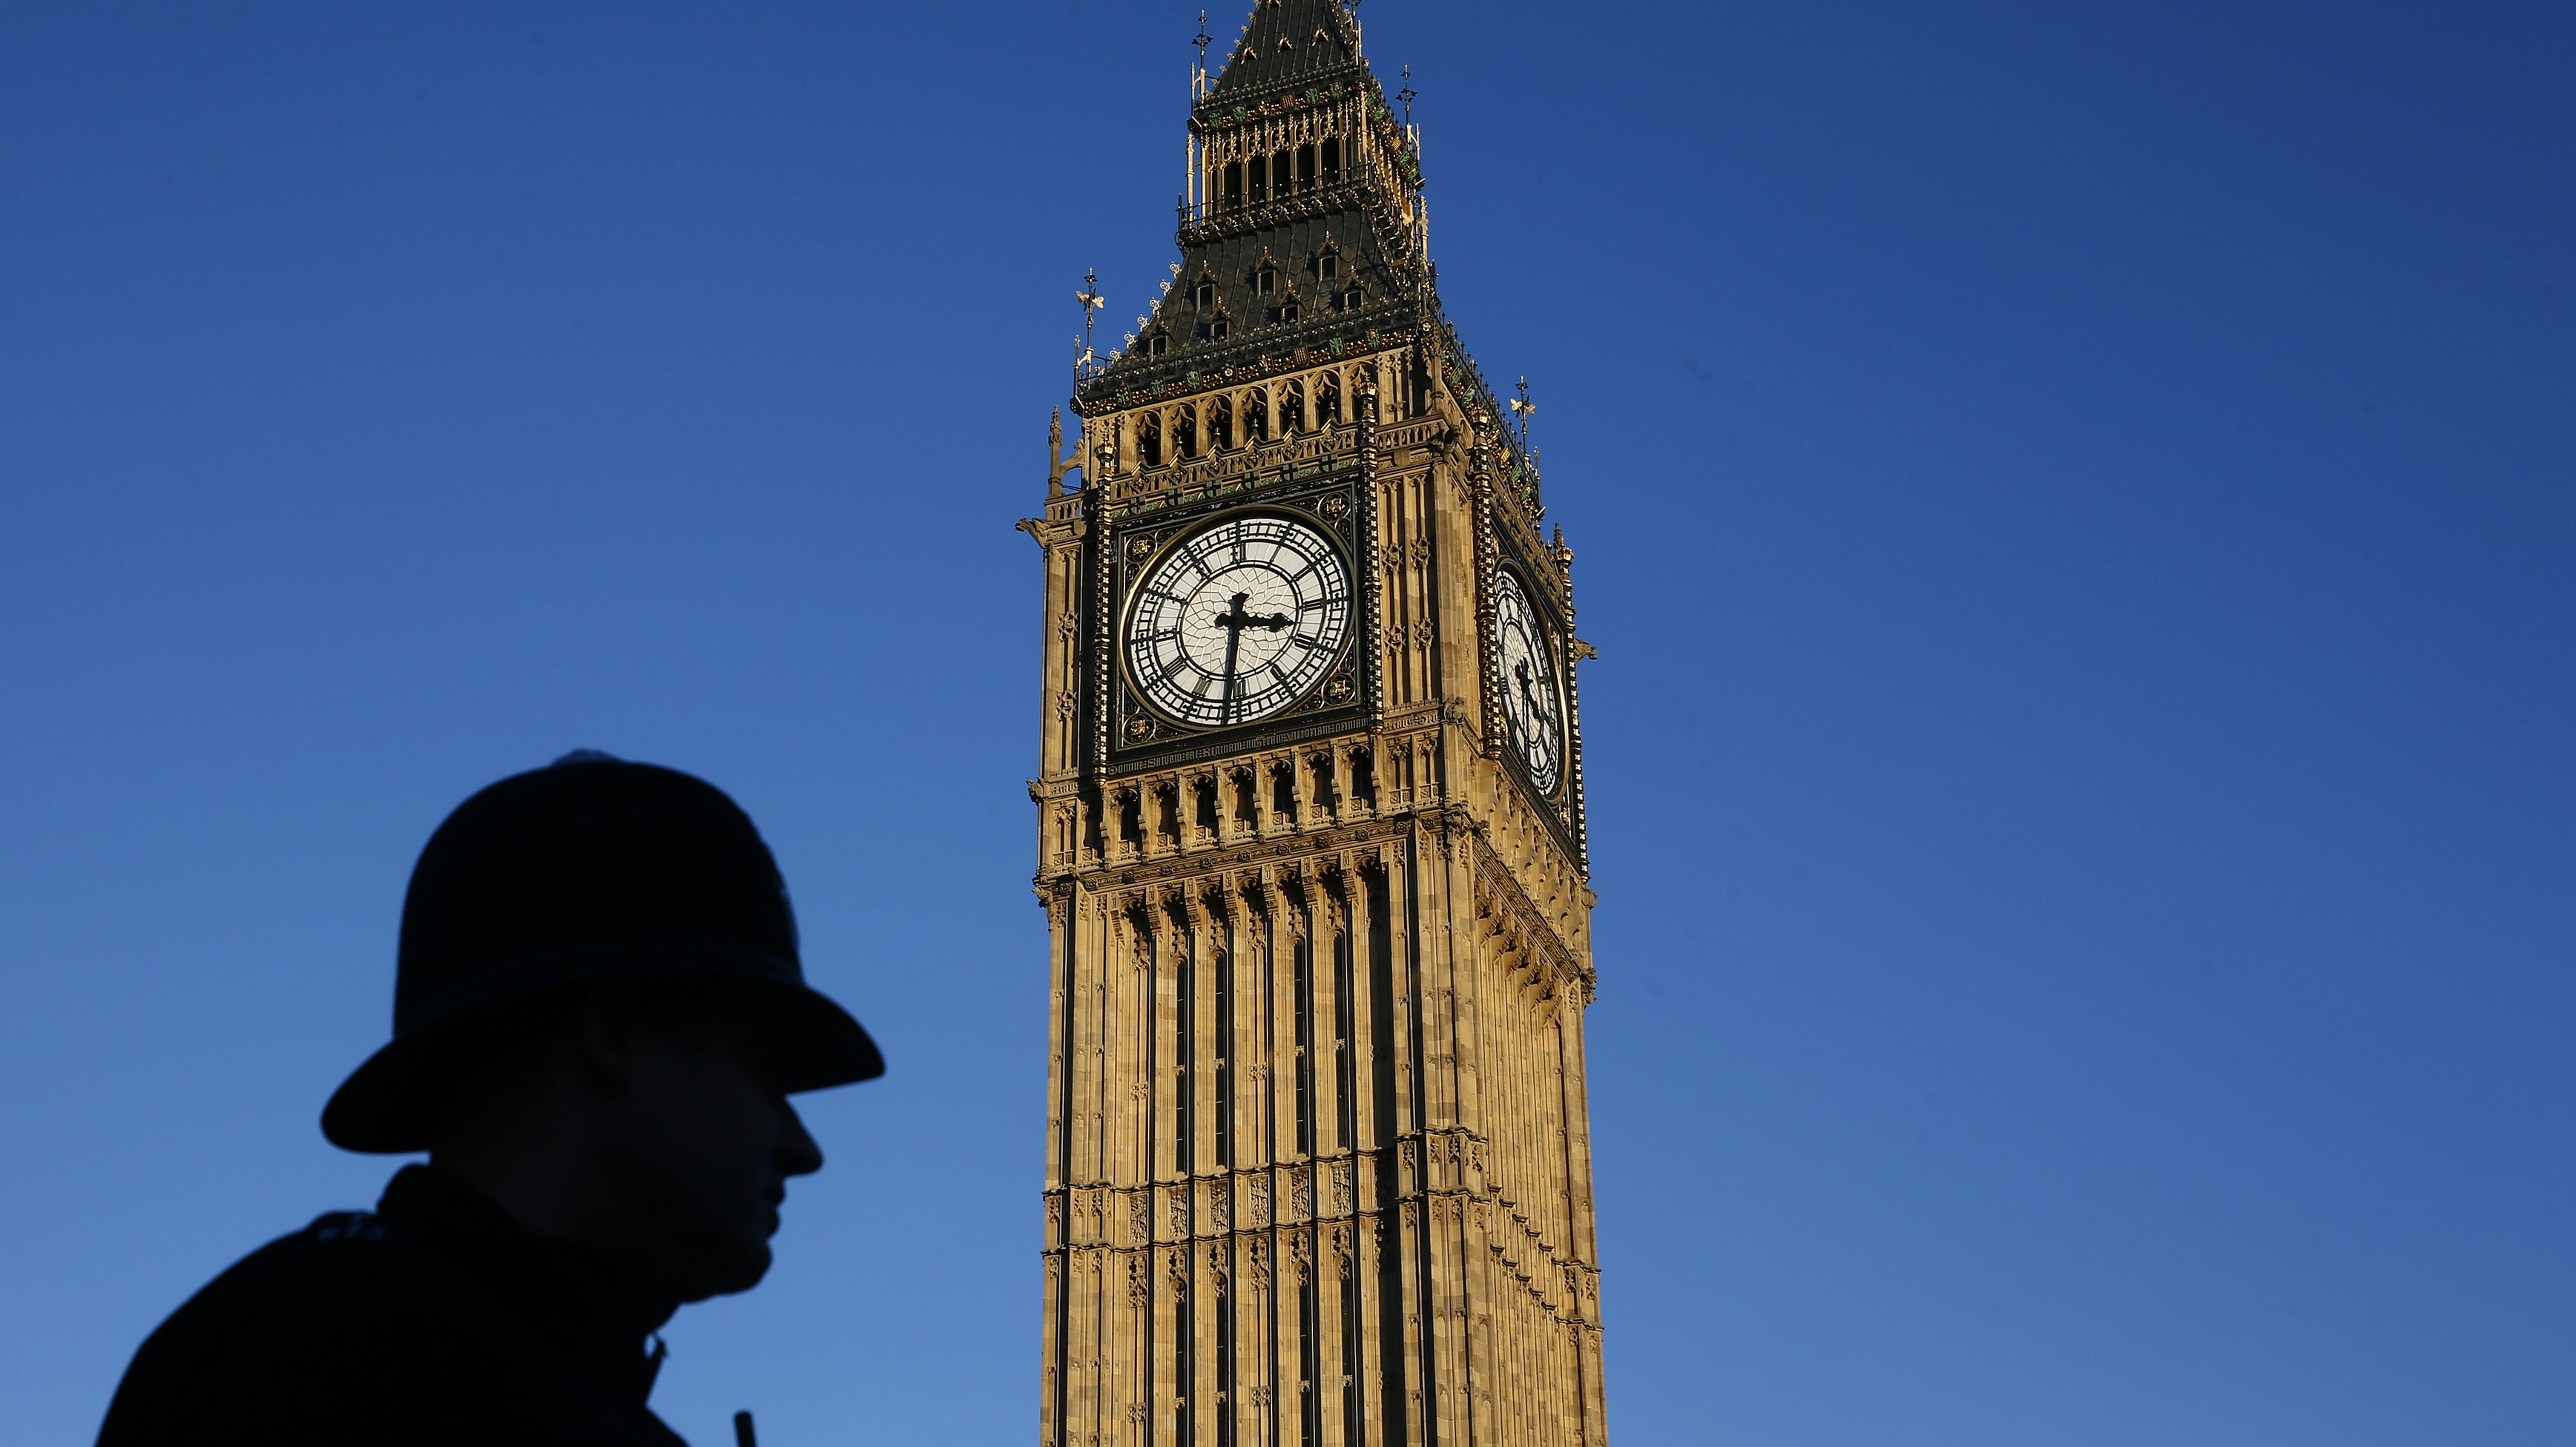 A police officer is silhouetted against the sky next to the Big Ben clock tower during sunset in central London.